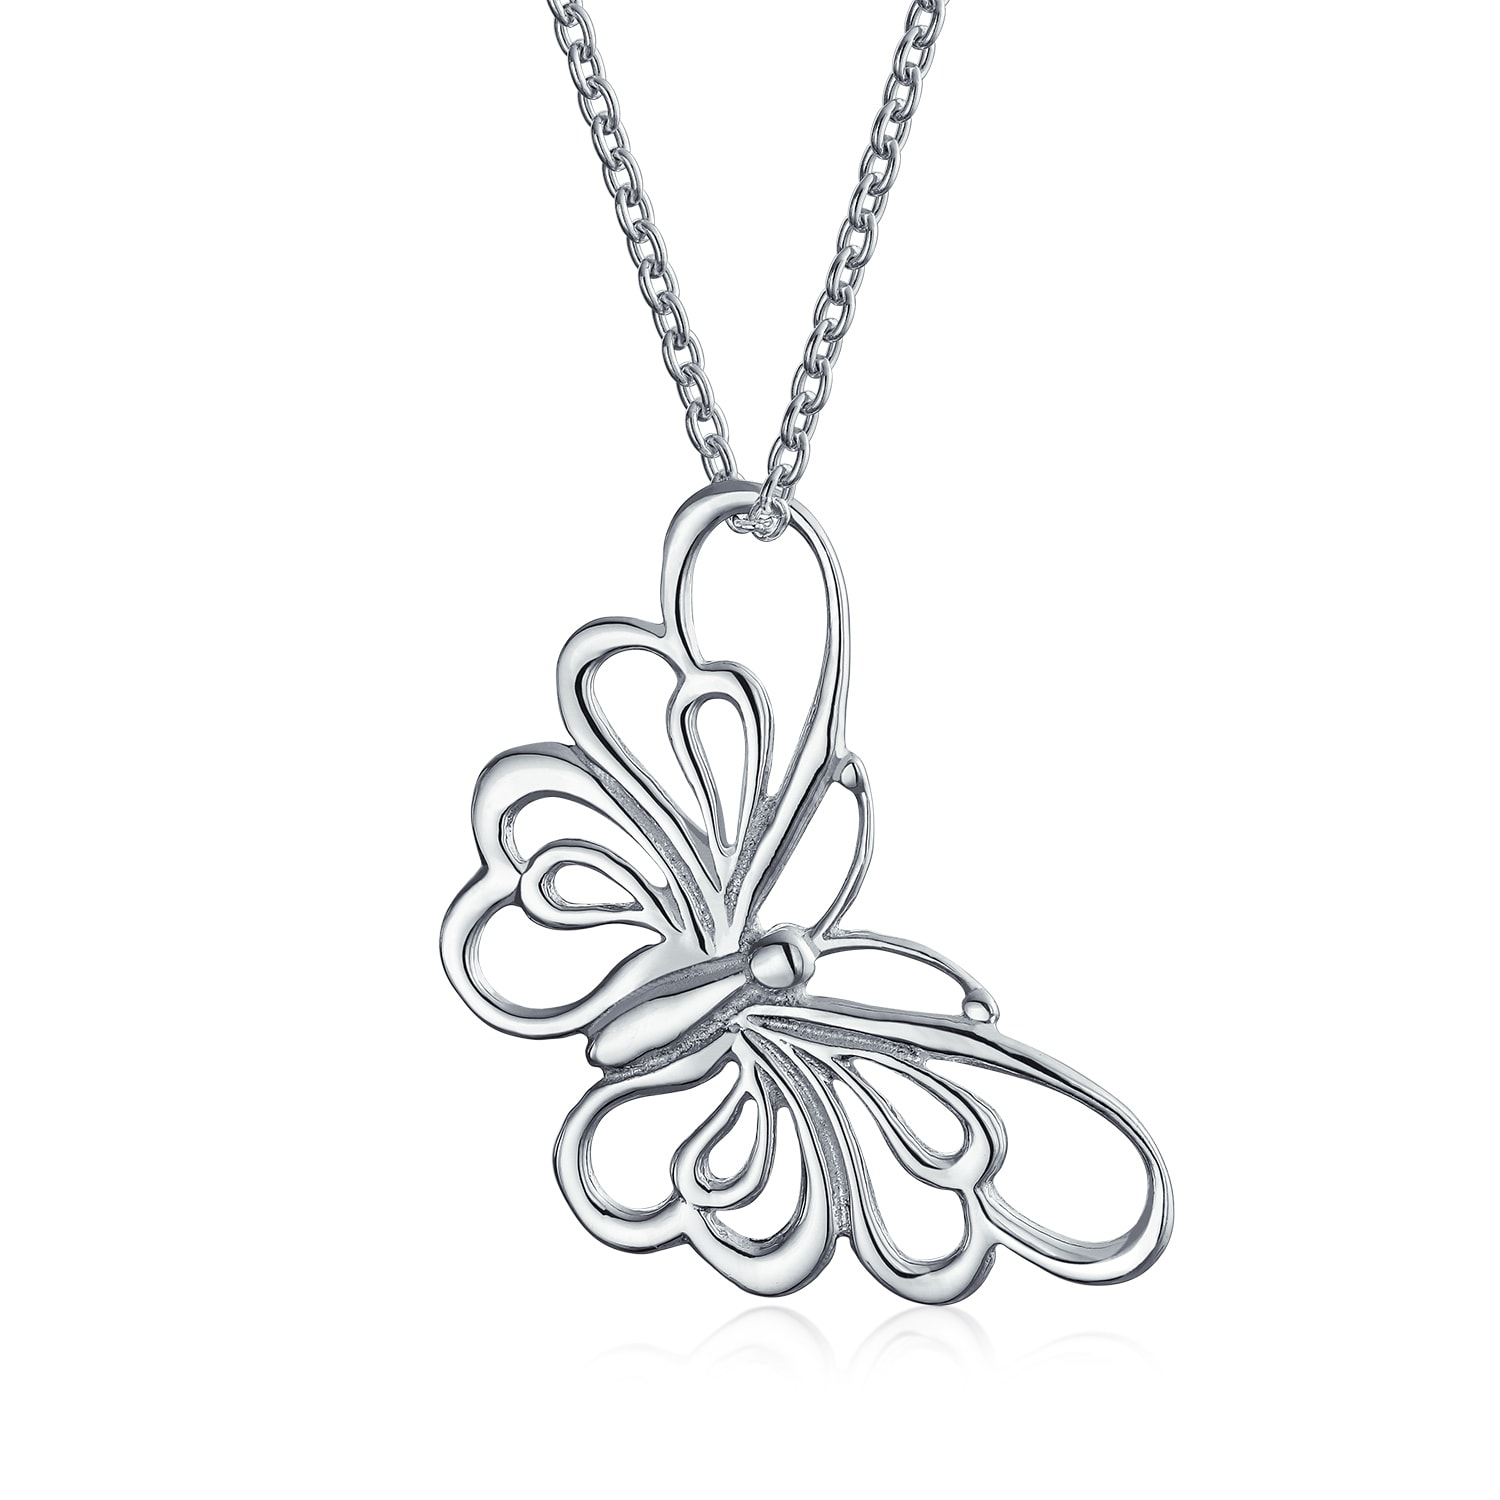 09801ec8a6af5c Shop Bling Jewelry Sideways Filigree Butterfly Pendant Silver Necklace 16  Inches - On Sale - Free Shipping On Orders Over $45 - Overstock - 17989220